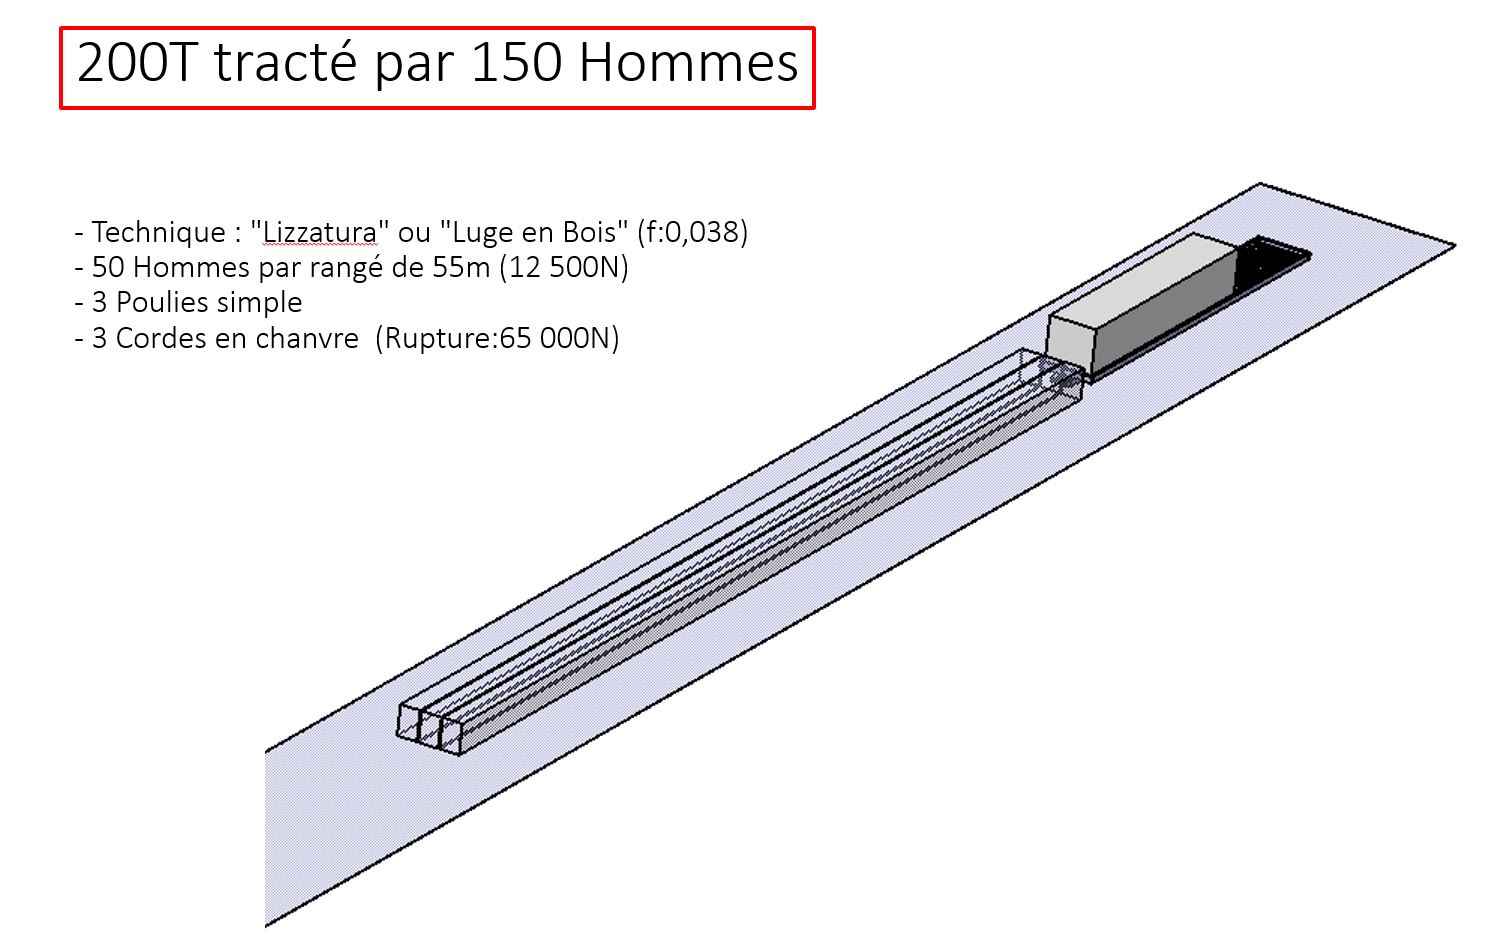 200t_tracter_150h_3poulies